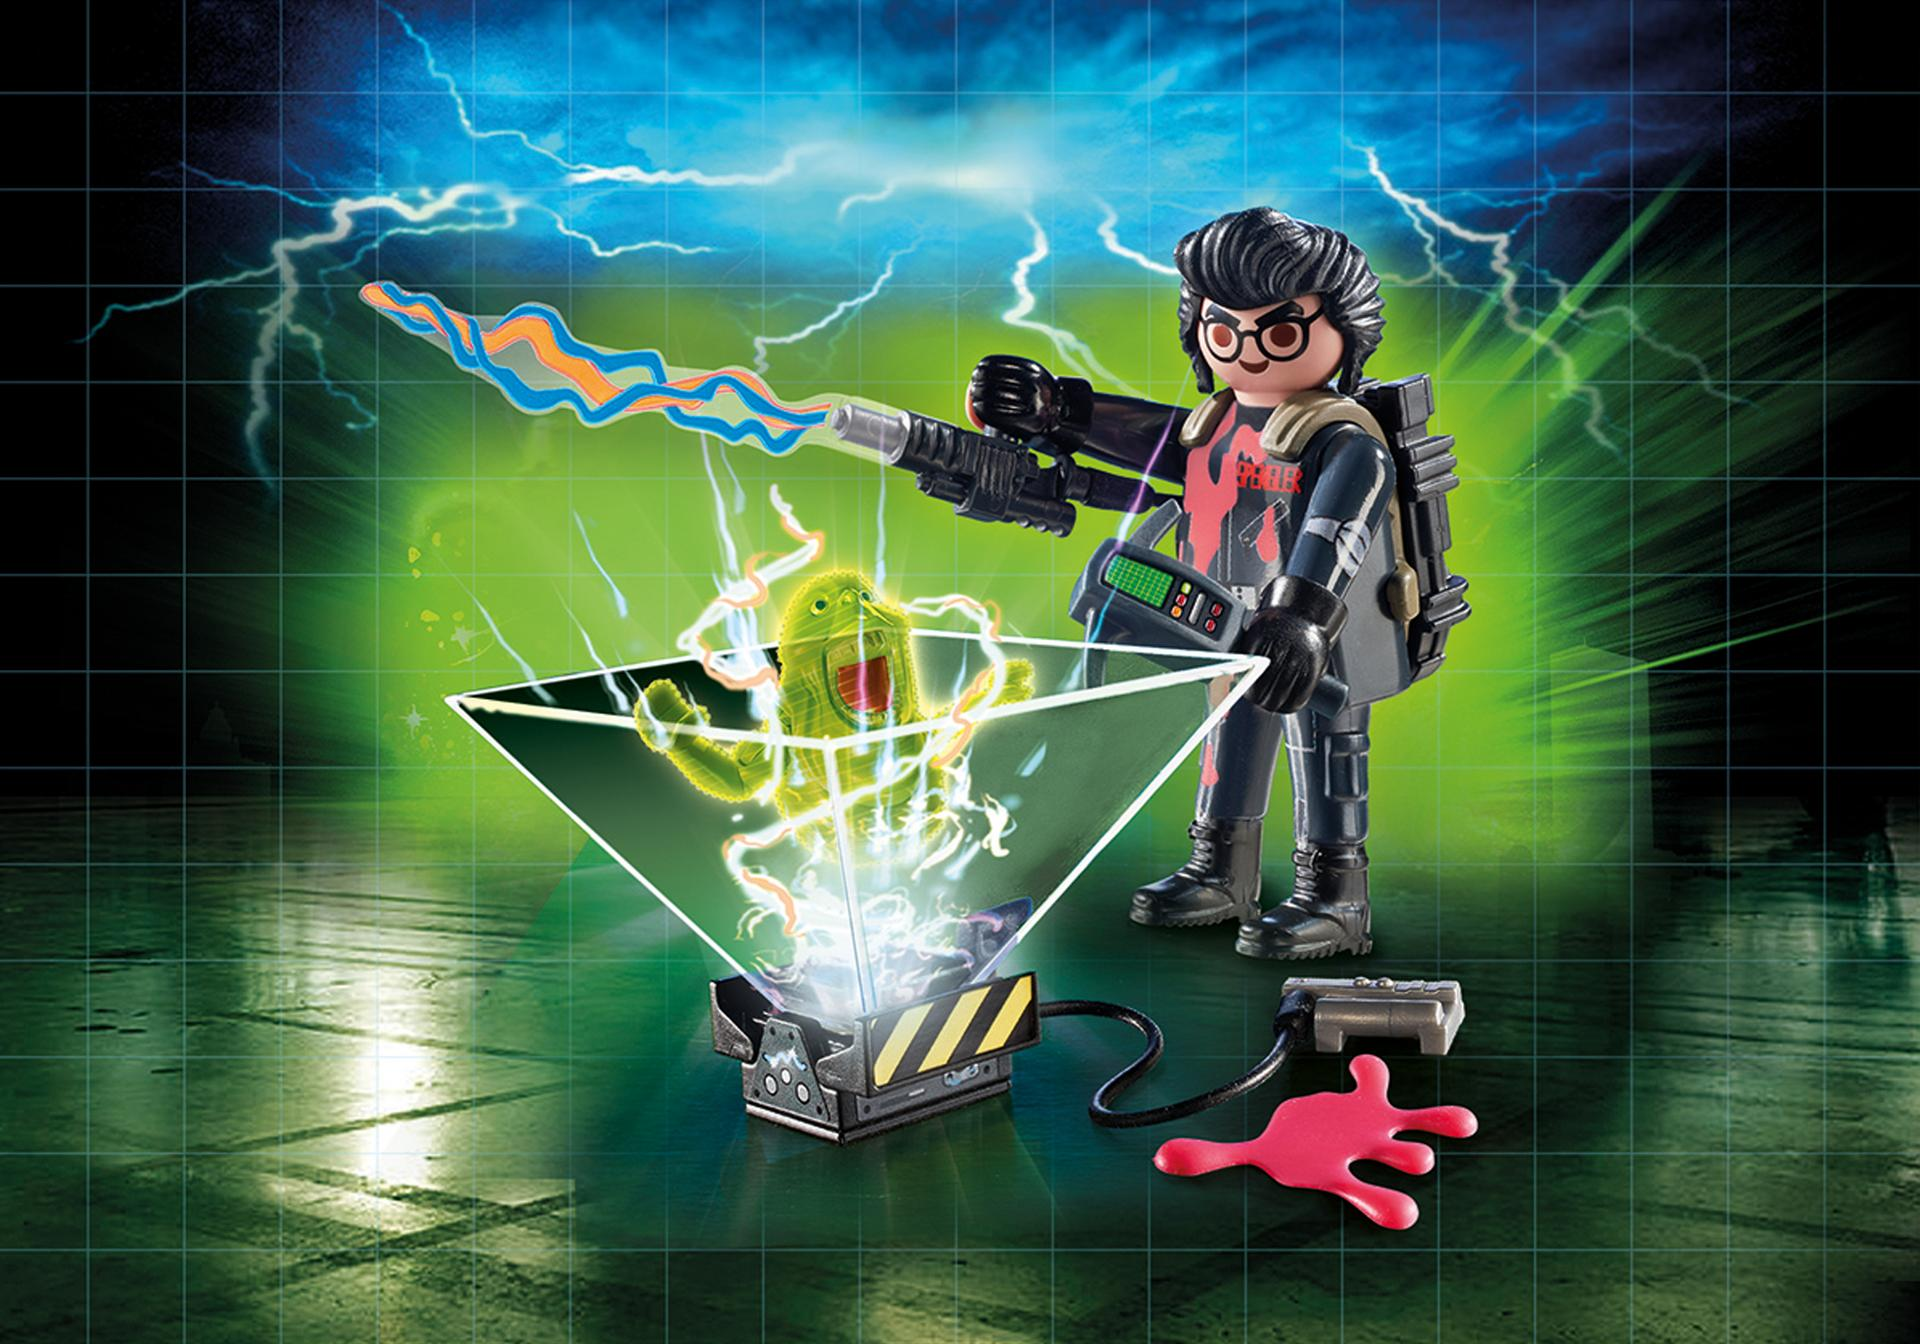 Playmobil: Ghostbuster Egon Spengler